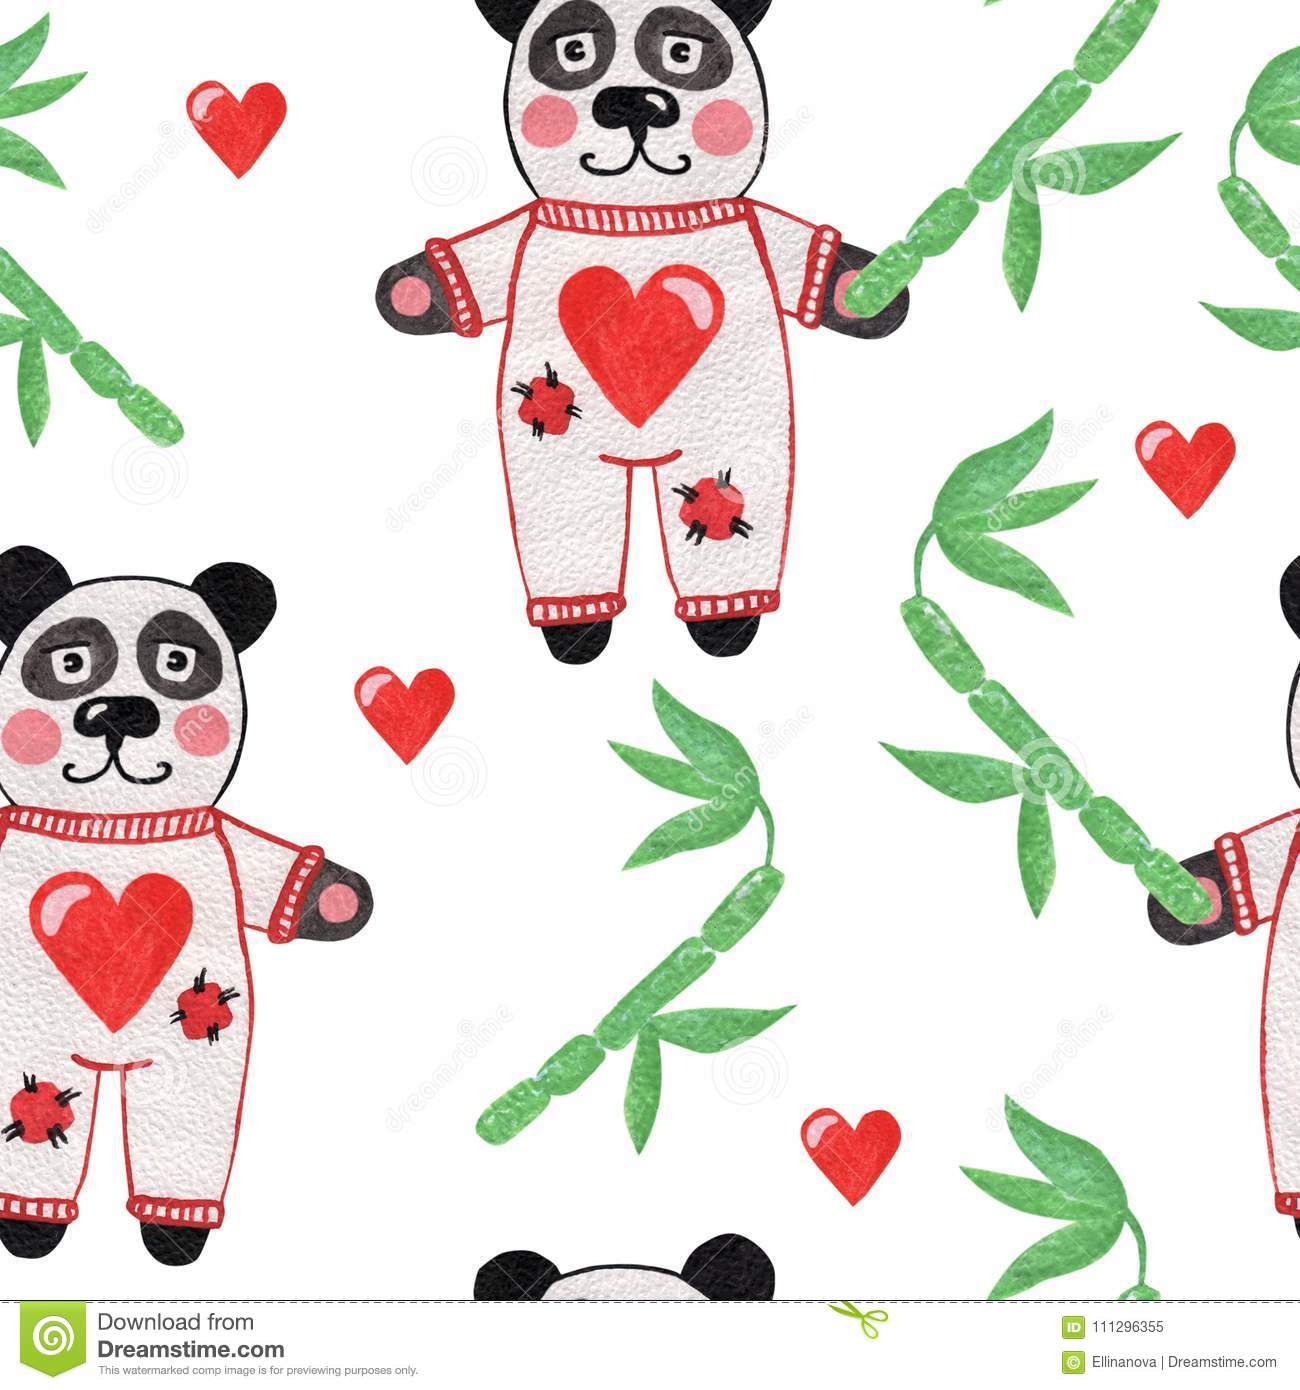 Cute little panda with bamboo and heart seamless pattern